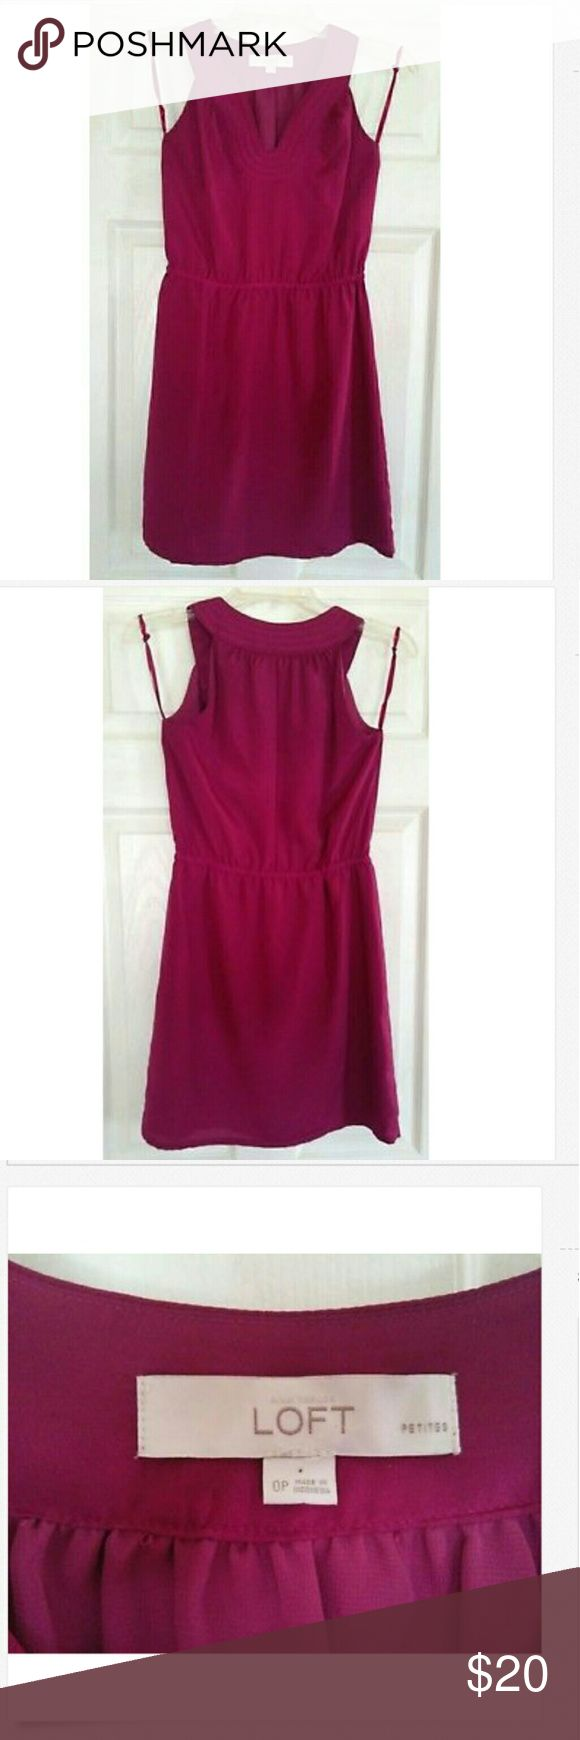 NWOT Anne Taylor LOFT Plum Sleeveless Dress in 0P Beautiful Anne Taylor LOFT sleeveless dress in plum perfect for the summer! This is brand new, never worn without the tags. Originally purchased for $49 in the Loft store. Size is 0 Petite and material is 100% polyester. Please review pictures for condition. LOFT Dresses Mini